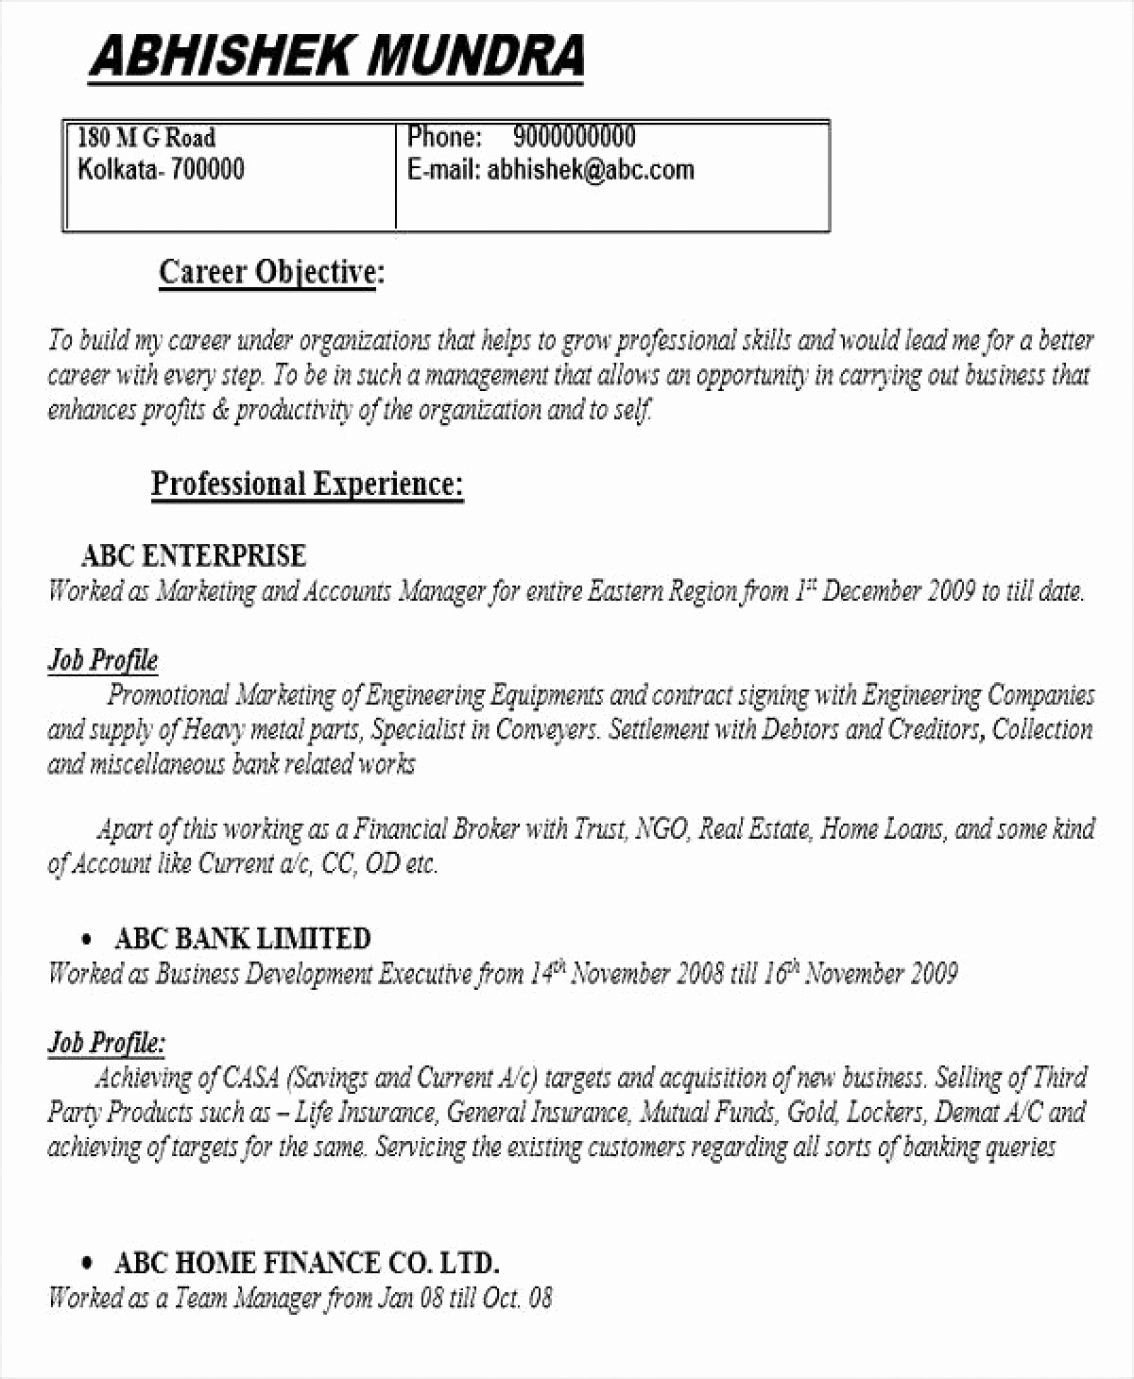 Mutual Fund Fact Sheet Template In 2020 Event Planning Template